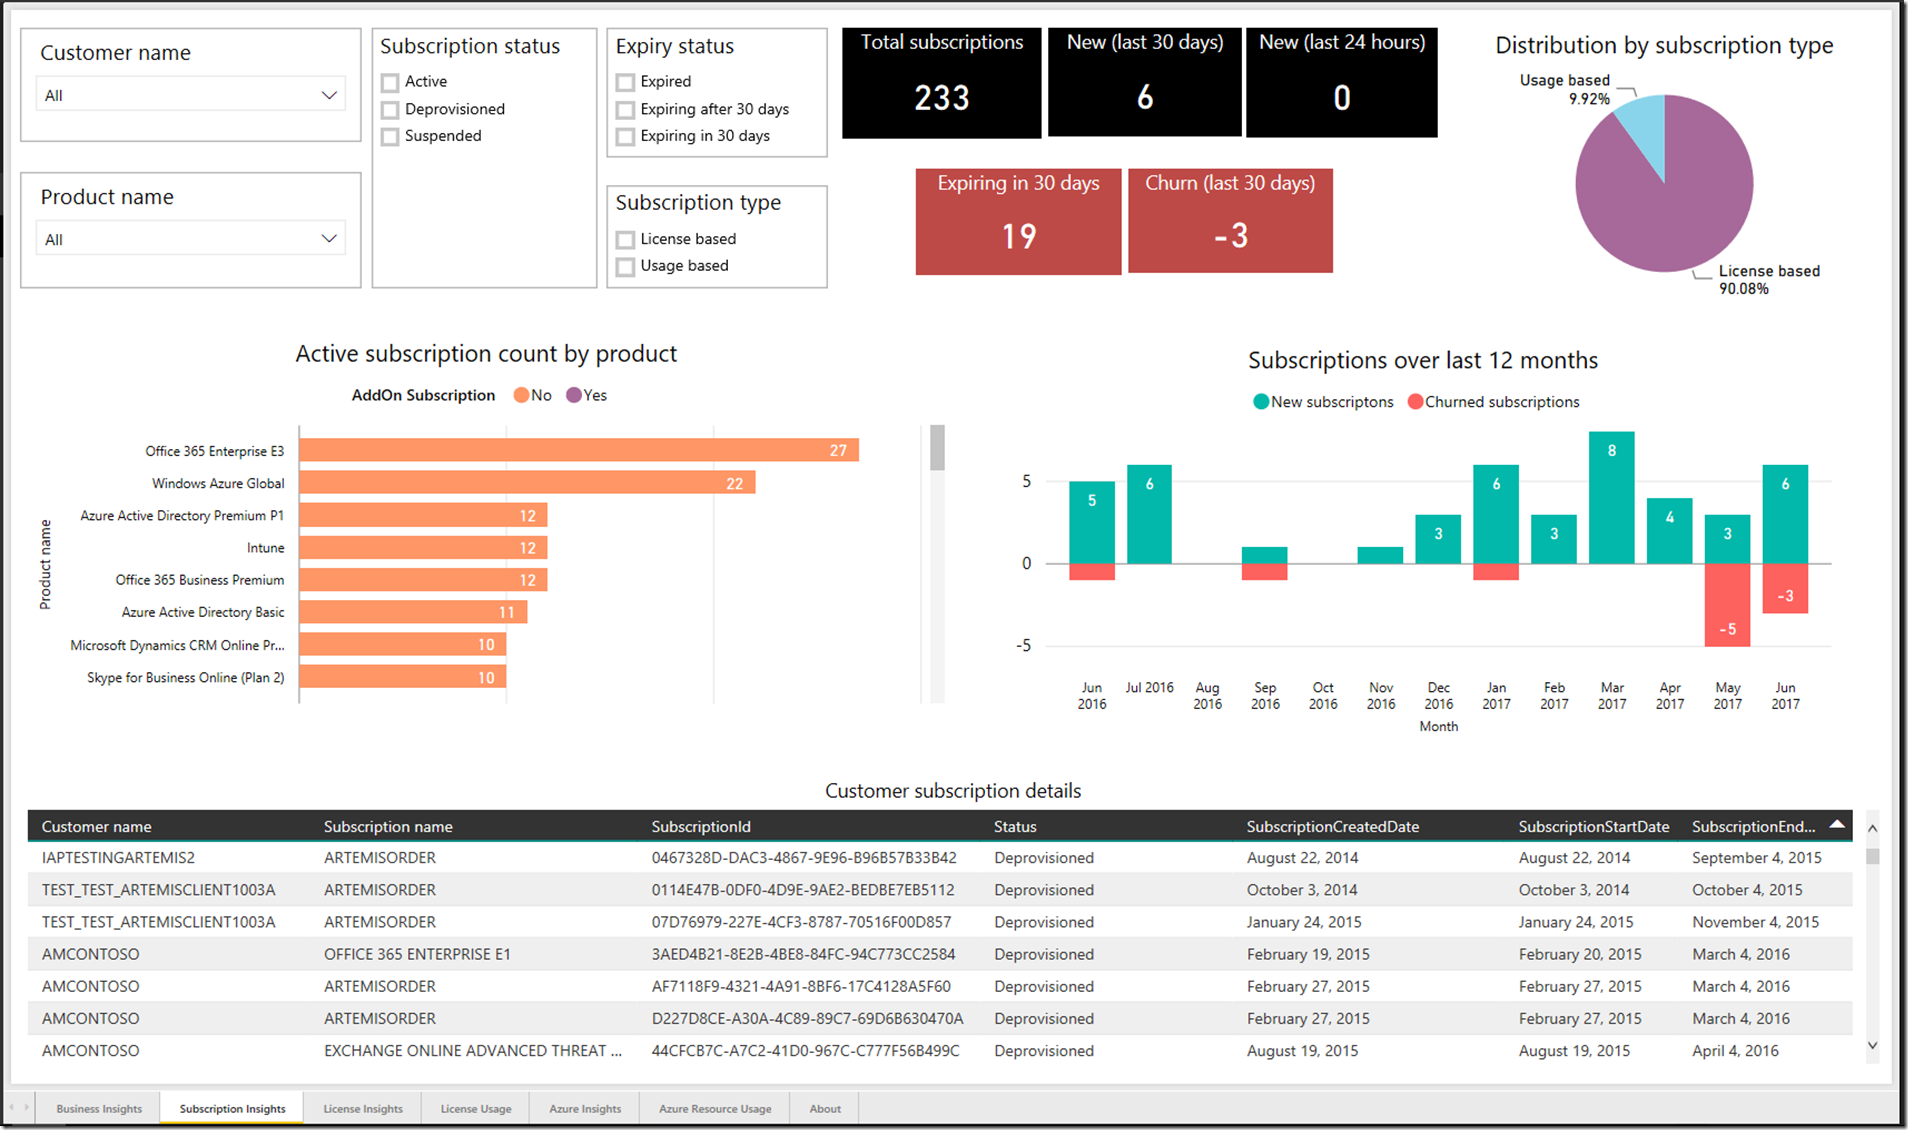 841f413f 7210 4a4a 98d4 0fdadcc394ea Explore your Partner Center Analytics Data in Power BI